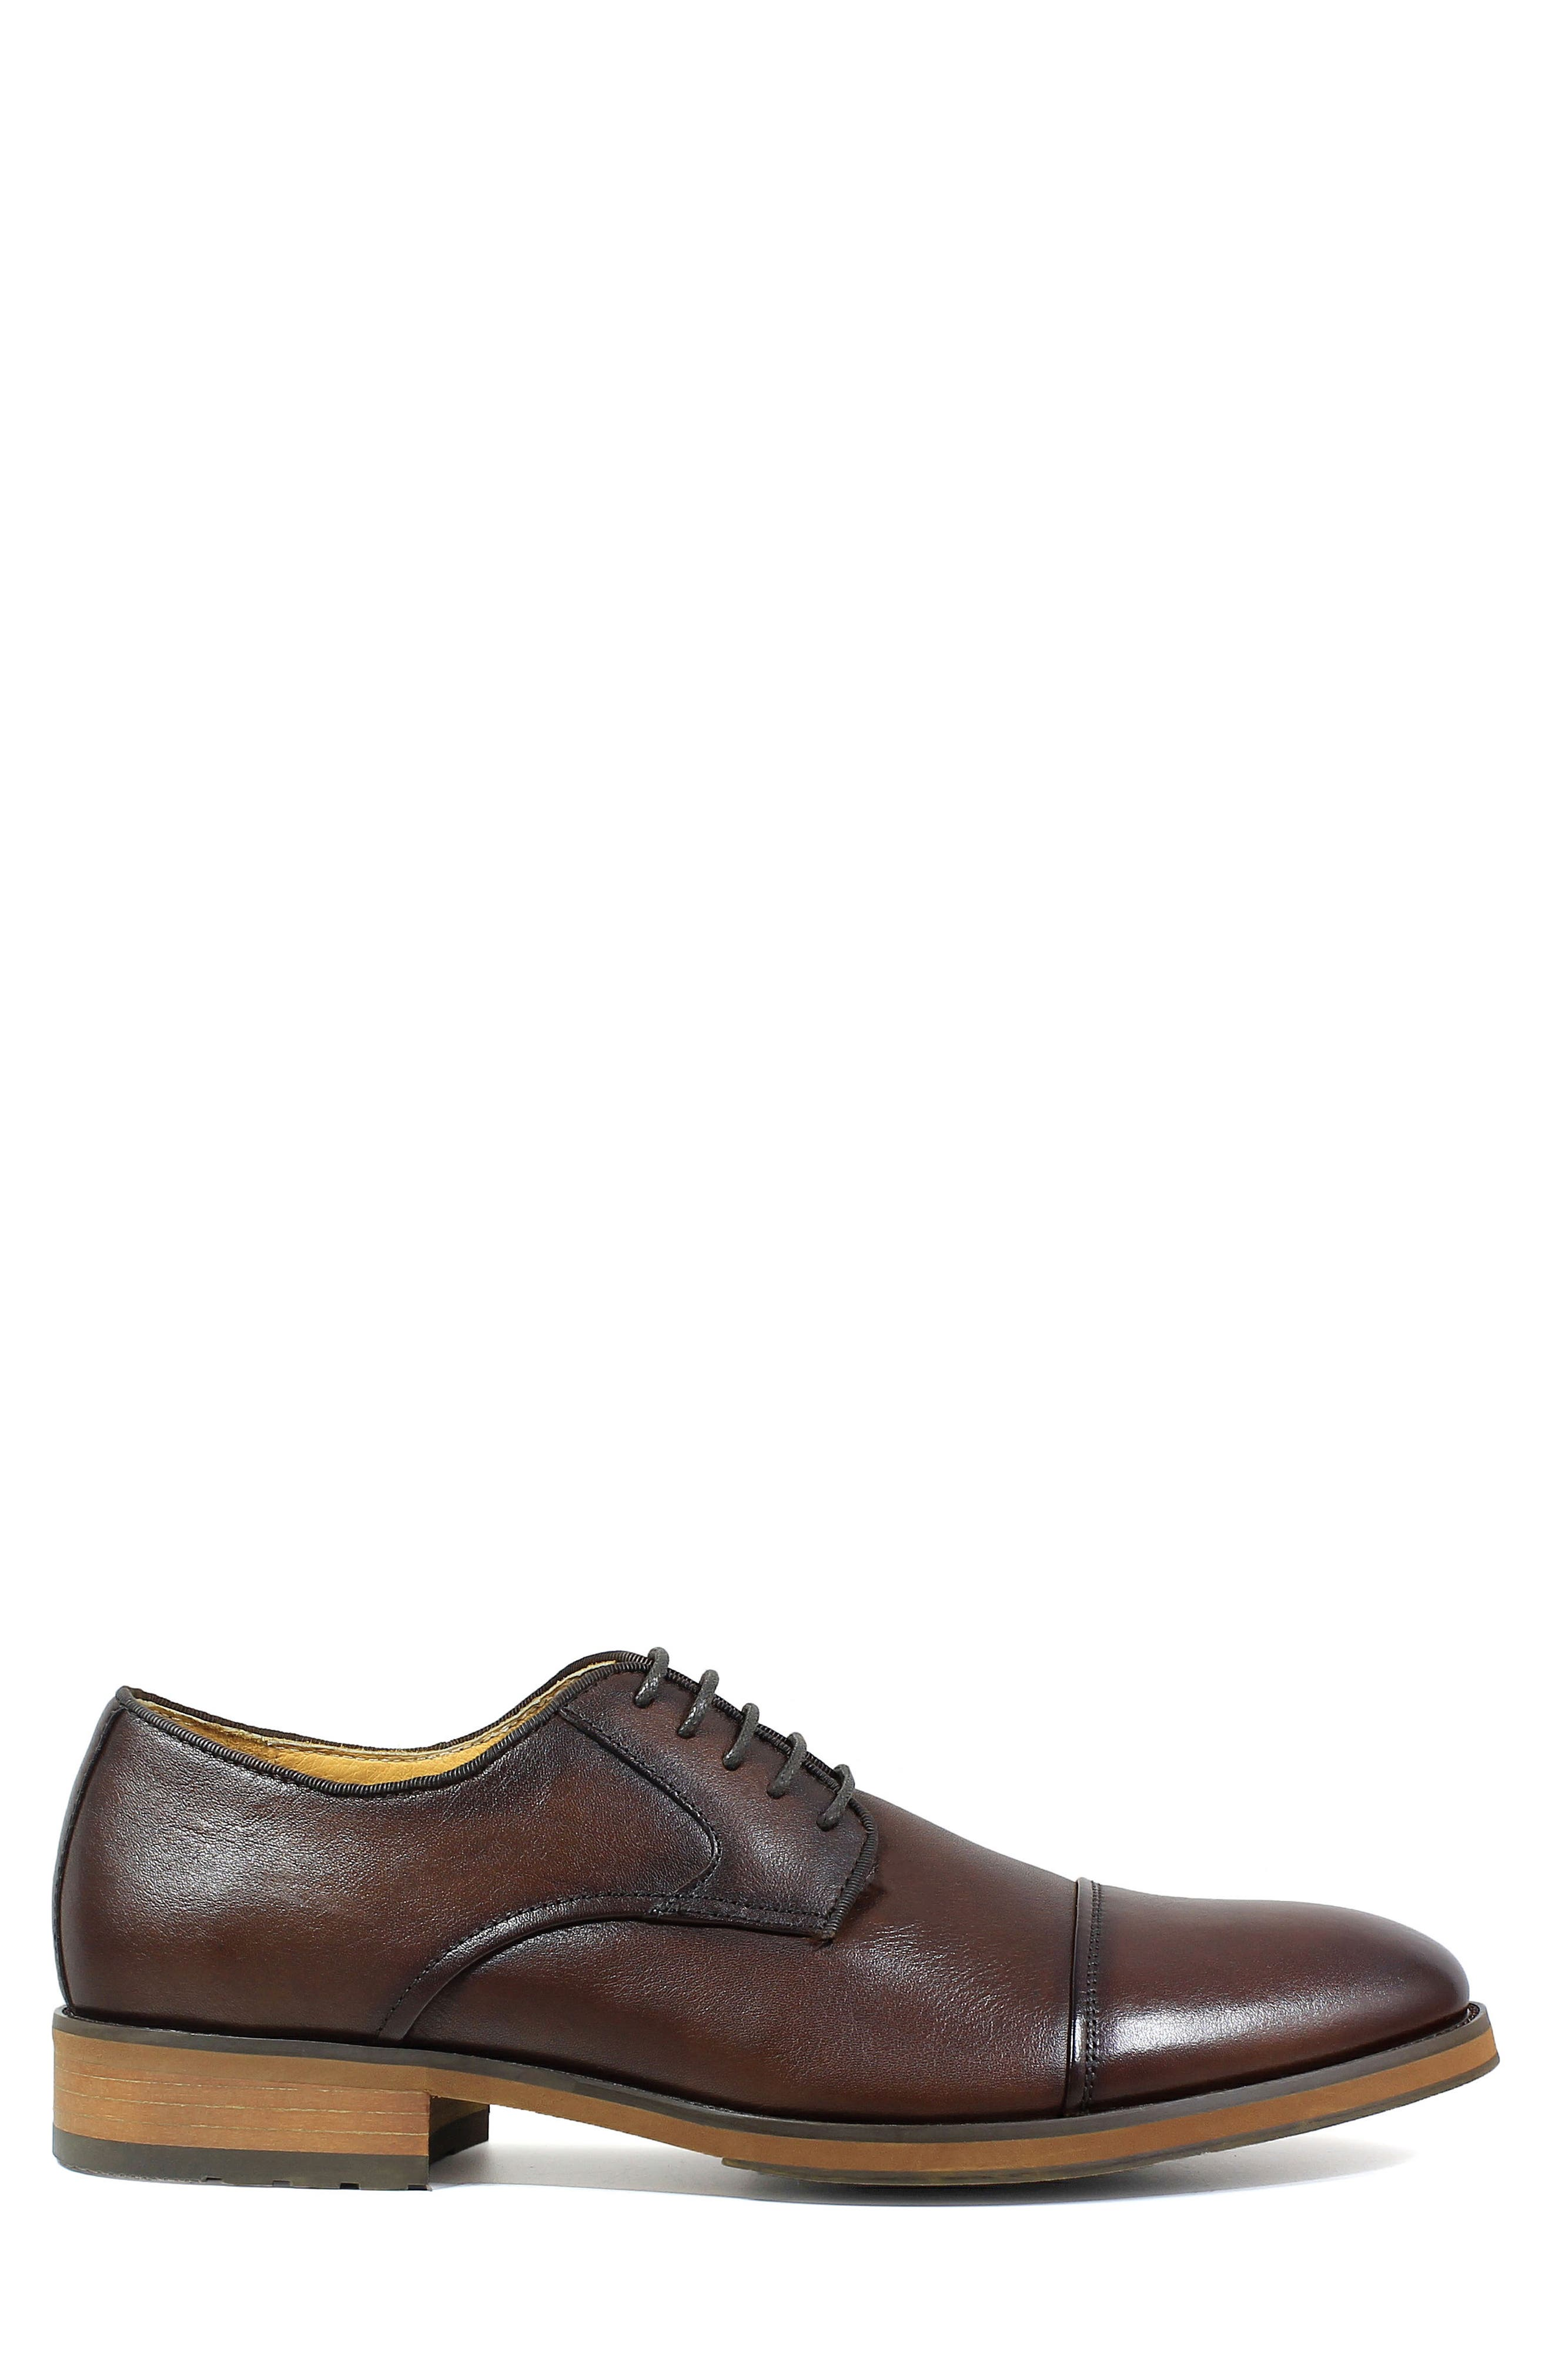 Blaze Cap Toe Derby,                             Alternate thumbnail 3, color,                             Cognac Leather